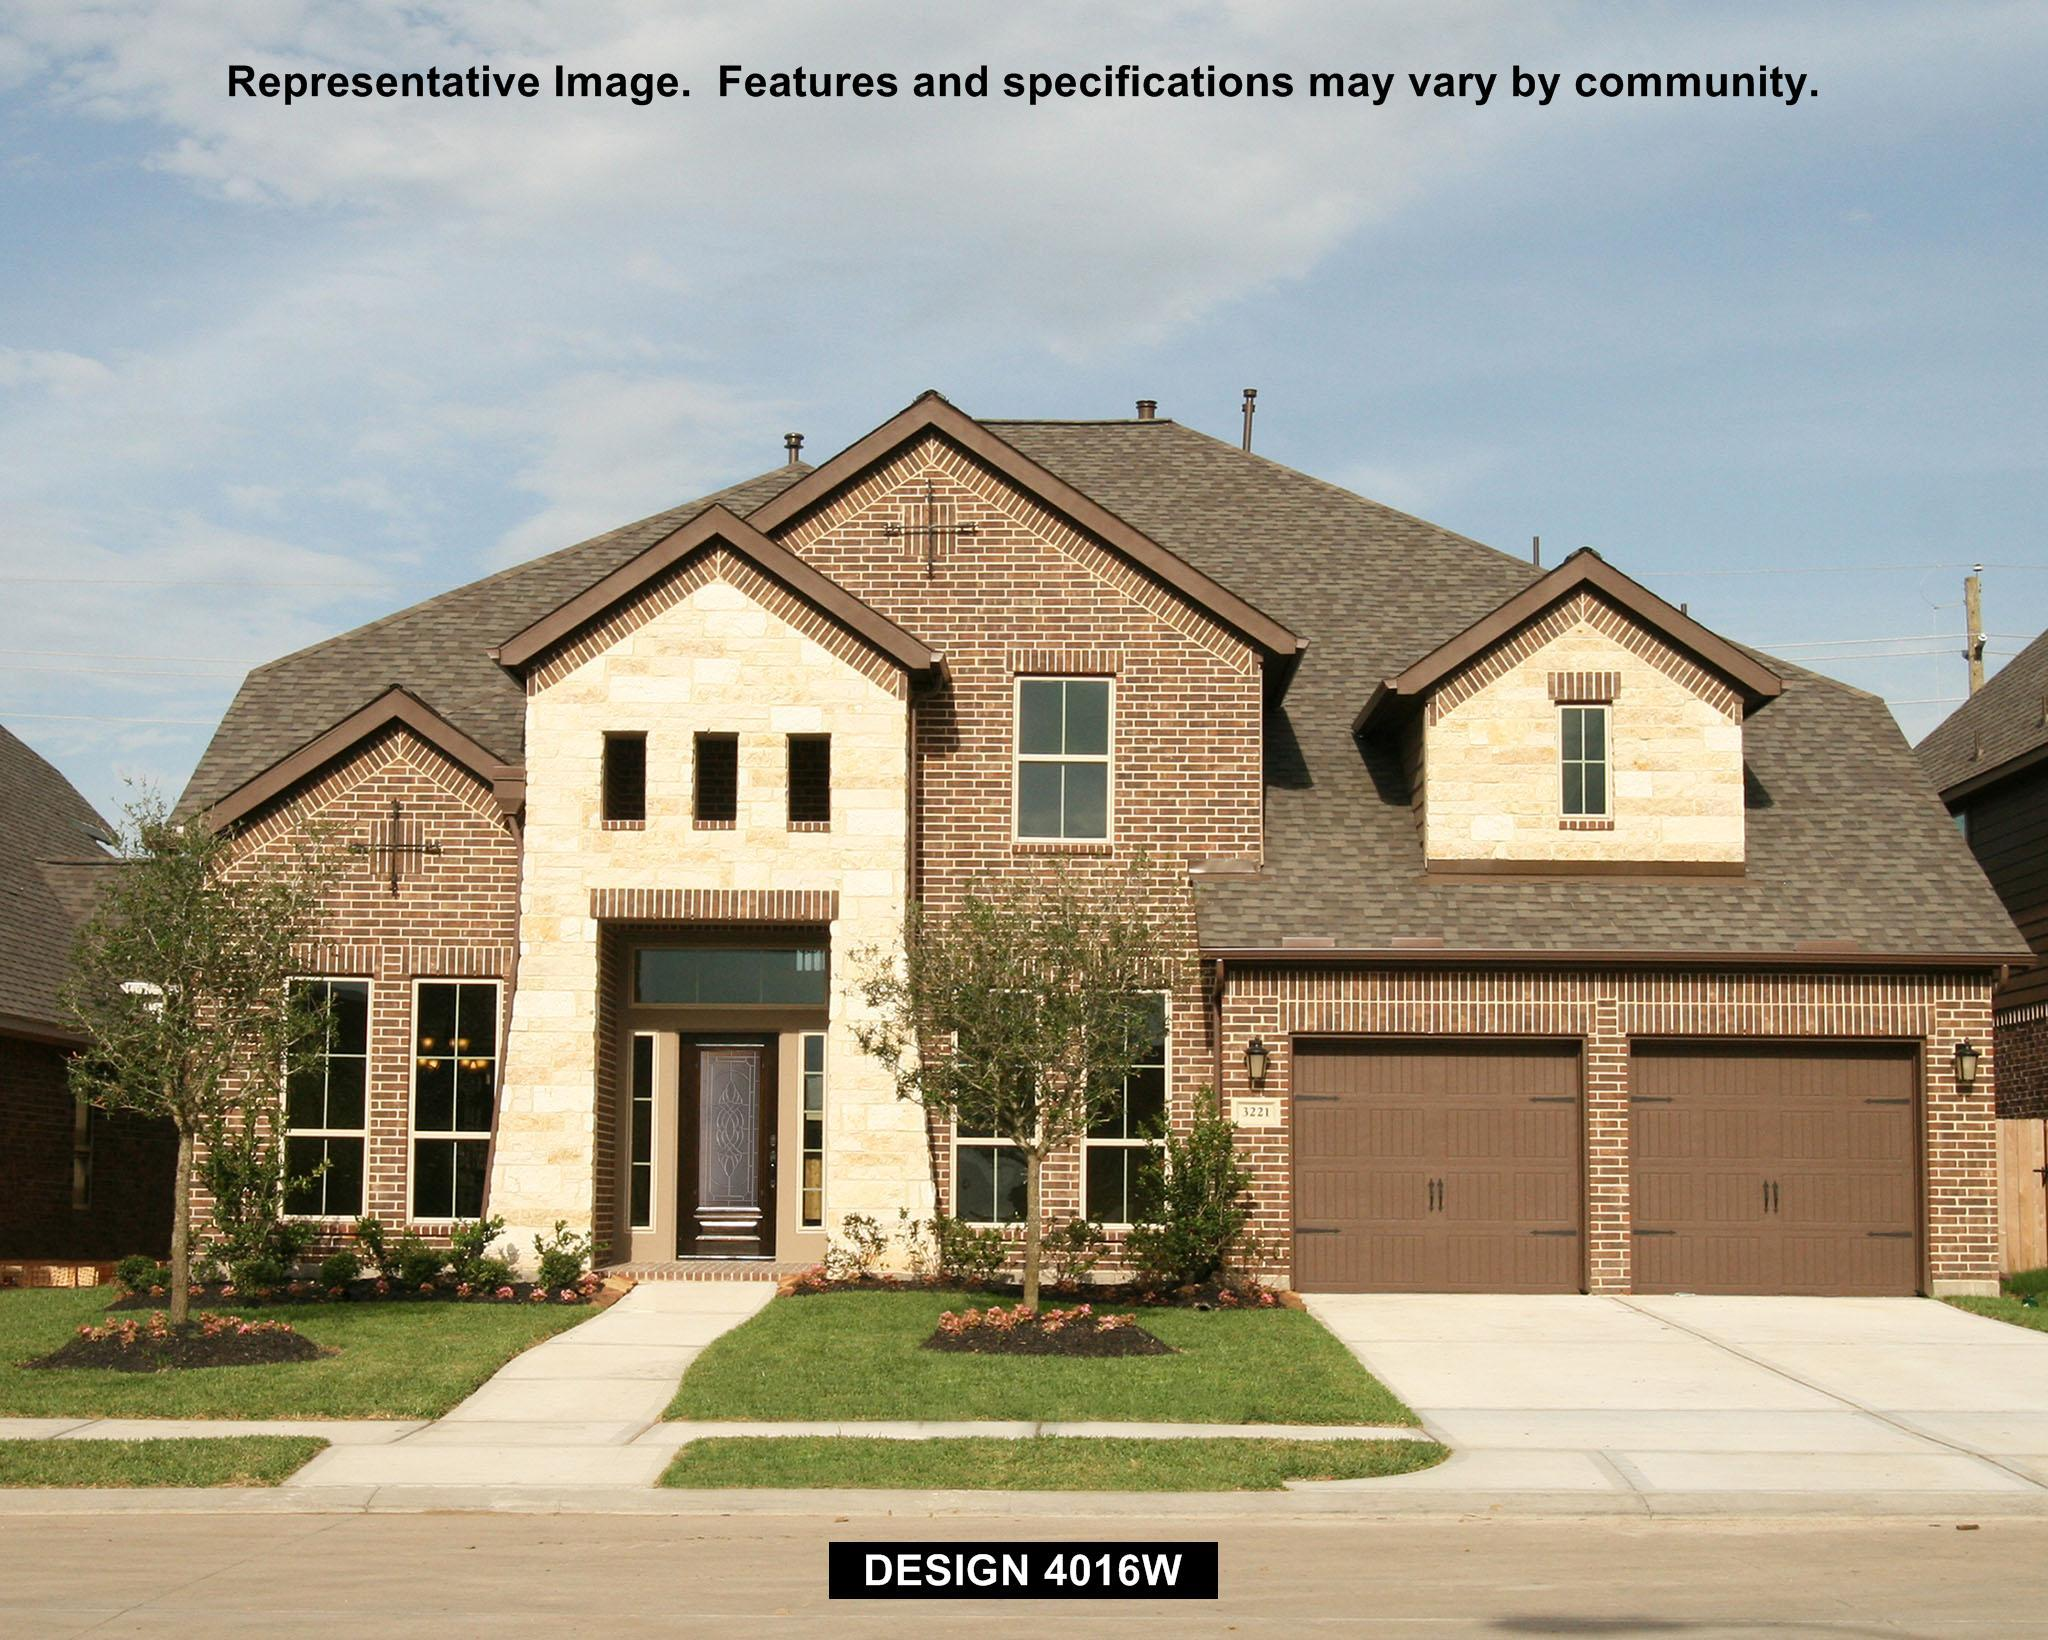 Single Family for Sale at Southlake 60' - 4016w 3407 Golden Cypress Lane Pearland, Texas 77584 United States